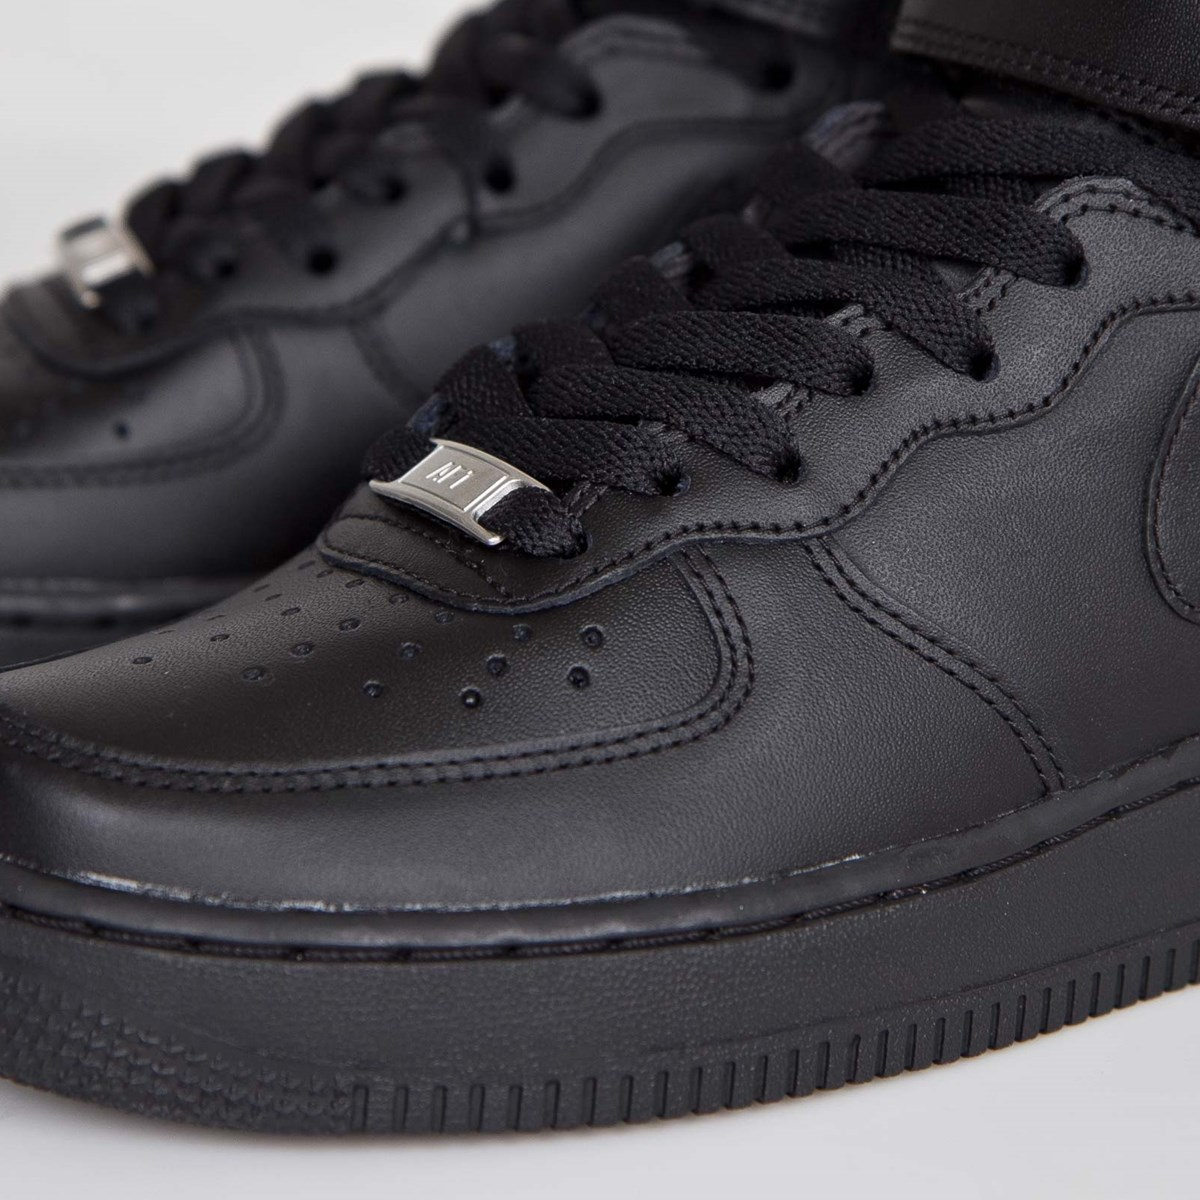 competitive price 8cedf 25d82 Nike Wmns Air Force 1 Mid 07 LE - 366731-001 - Sneakersnstuff   sneakers   streetwear  online since 1999